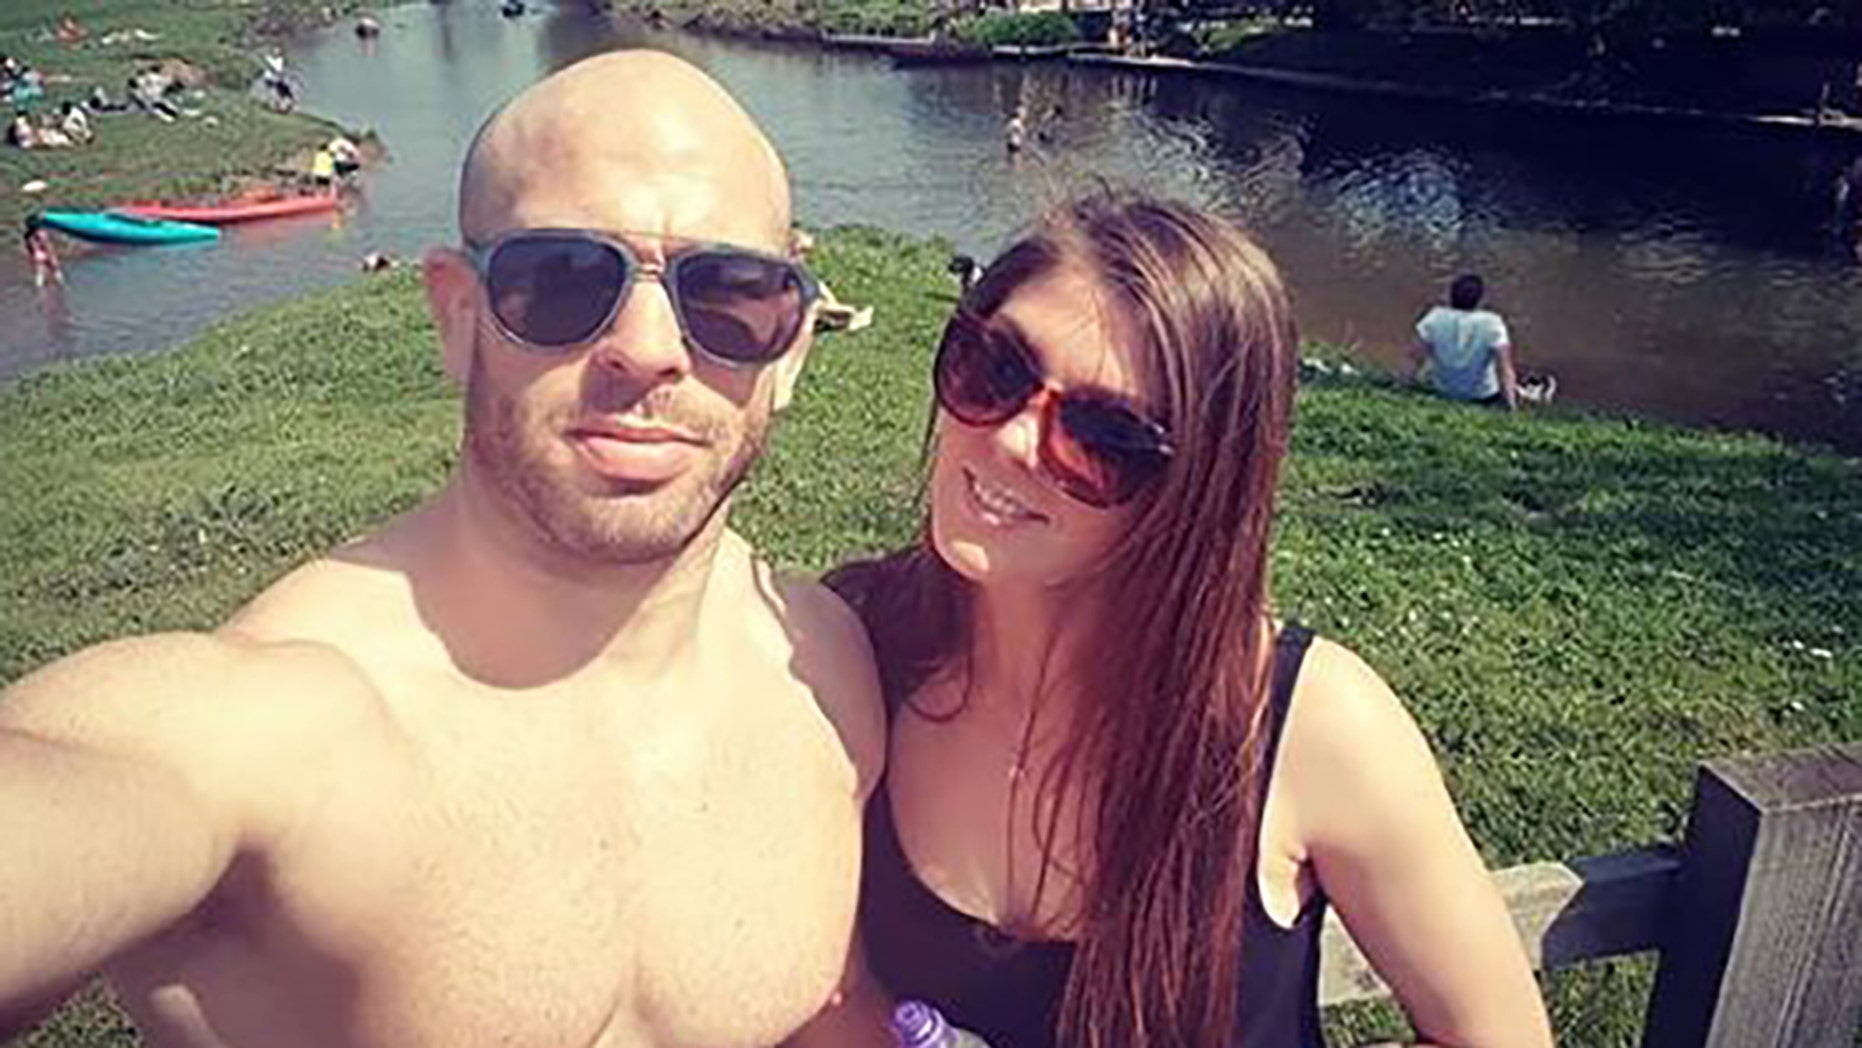 MMA fighter Jack Mason, left, poses with his wife. Mason suffered a nasty cut to his eye at an event in Sweden.